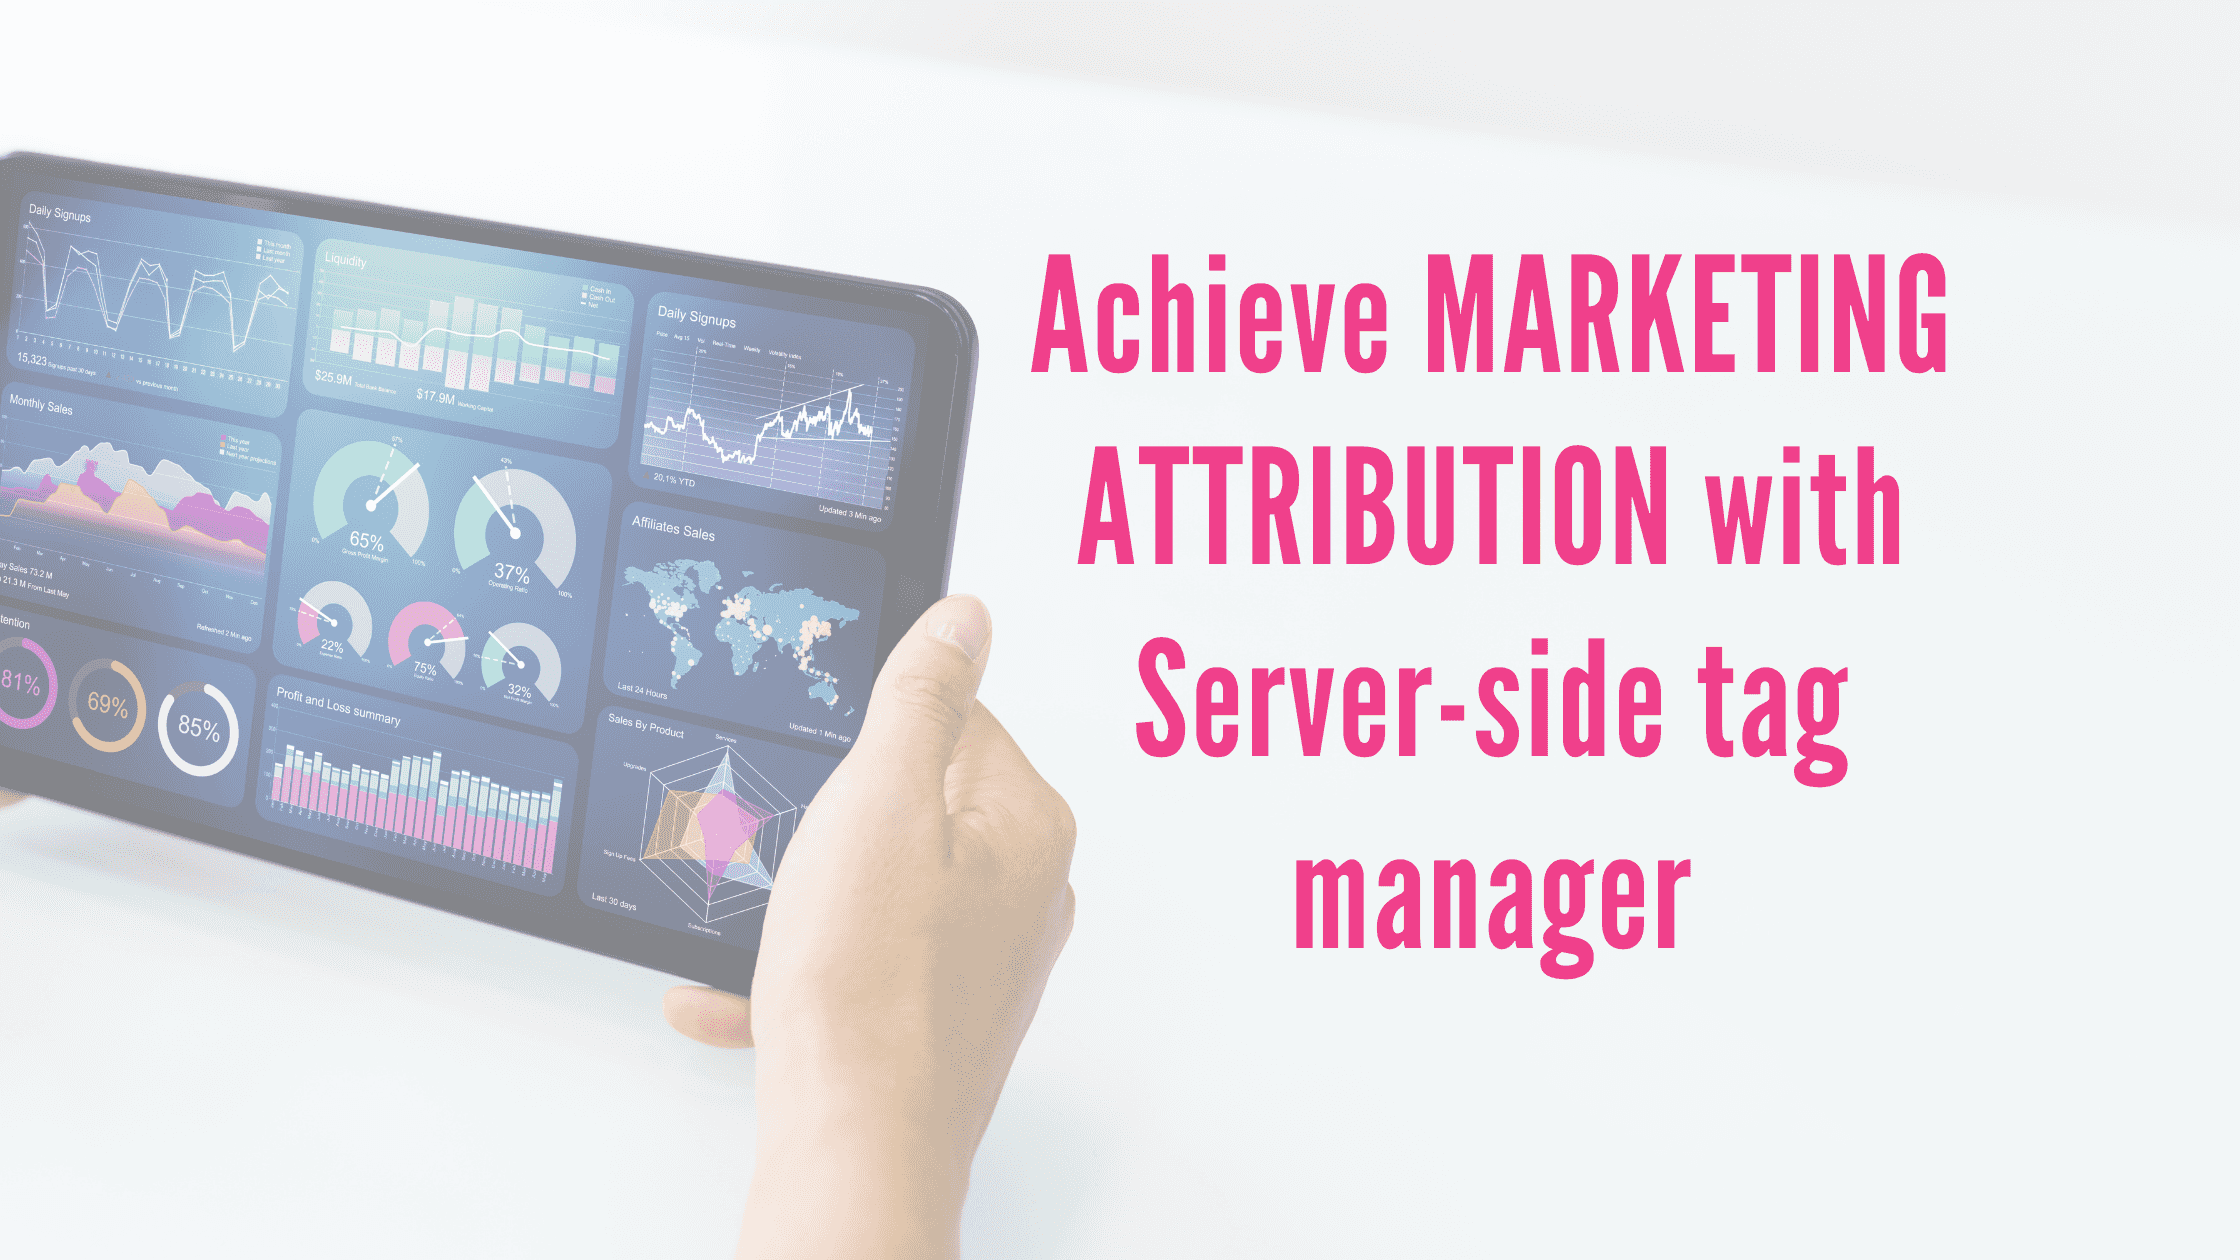 Achieve Marketing Attribution with Server-side tag manager